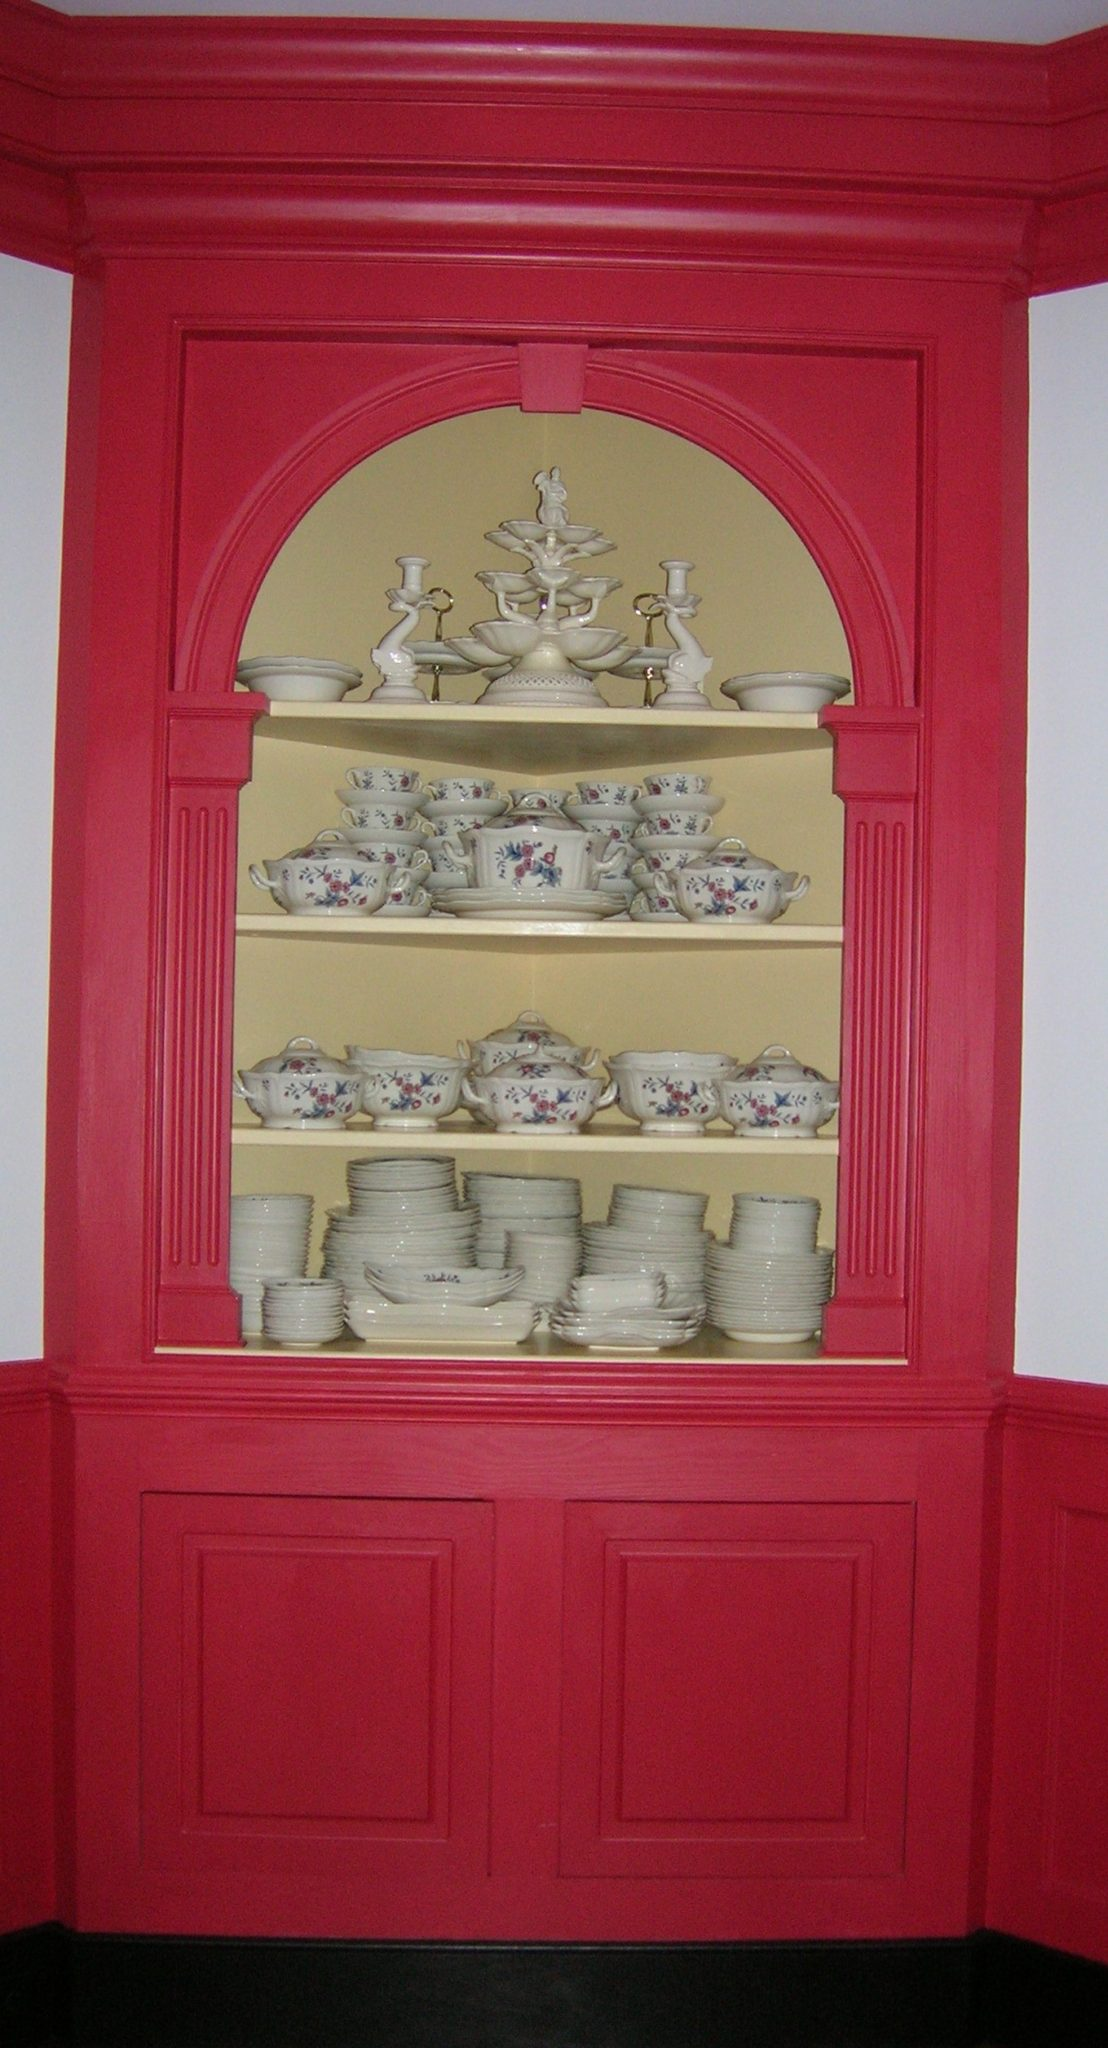 The Large Corner Cabinet Displays An Extensive Collection Of Wedgwood  Queens Ware Tableware And Other Cream Ware Pieces.